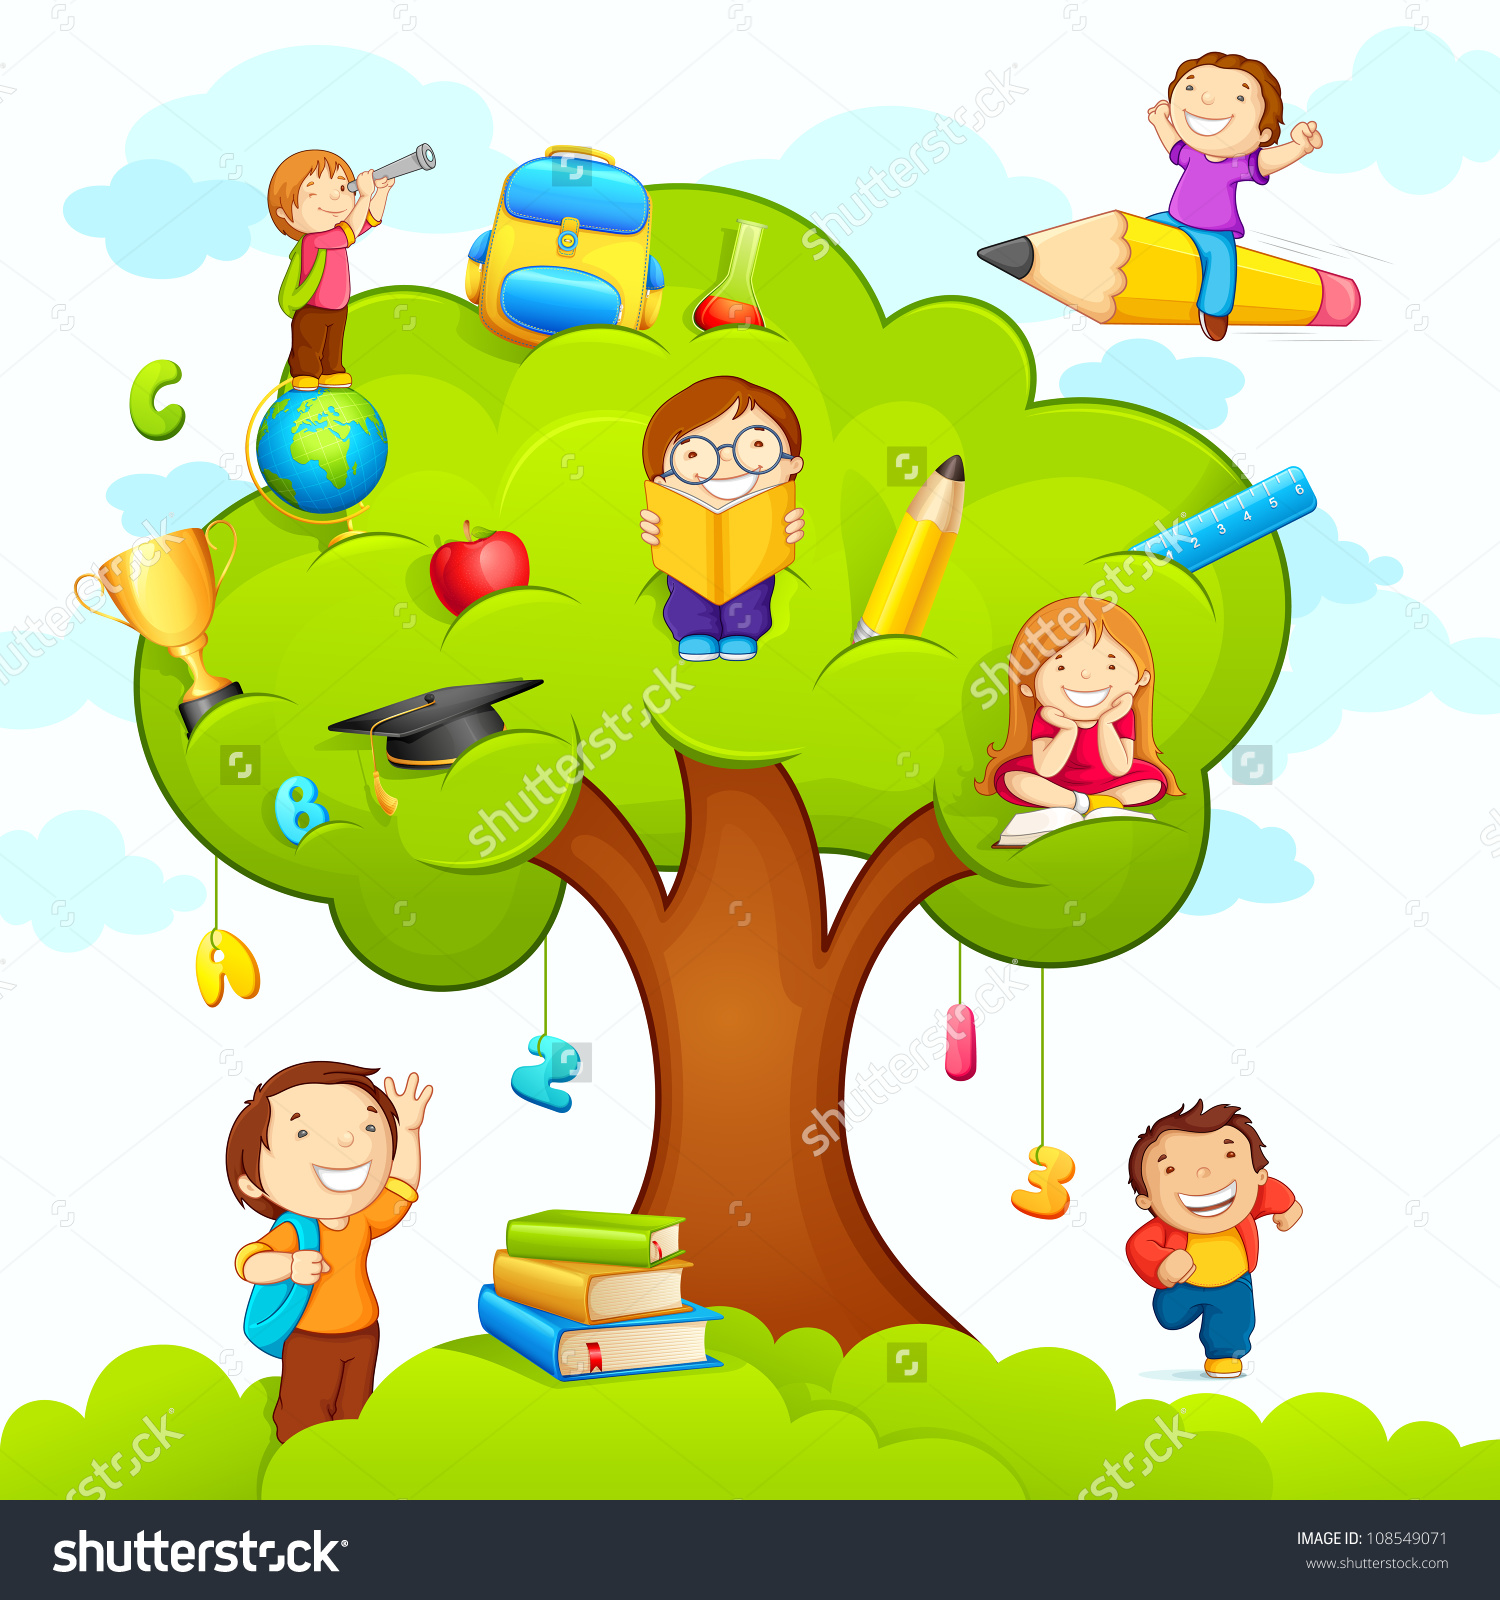 Vector Illustration Kids Studying On Tree Stock Vector 108549071.